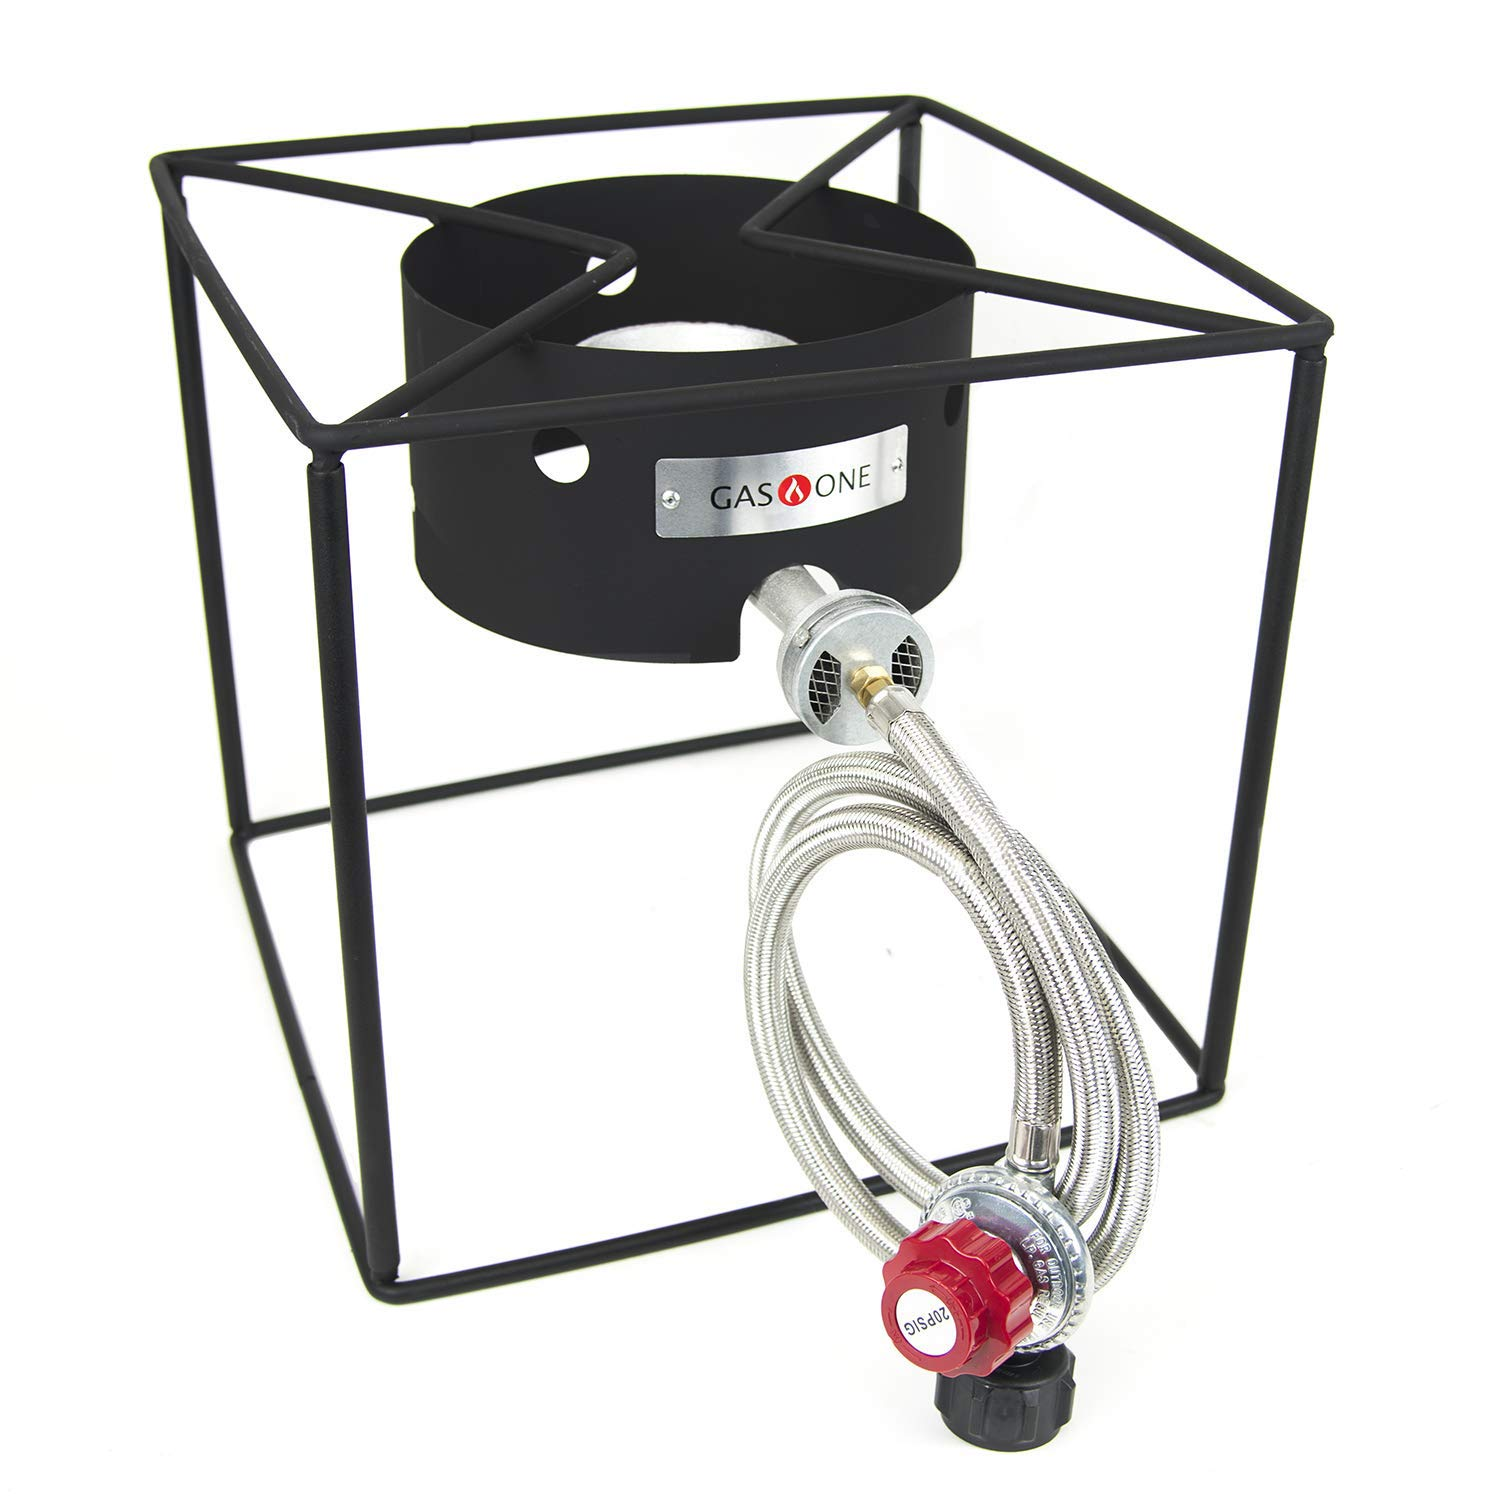 GasOne Simplicity Portable Propane Burner - Camping Stove - with High Pressure Propane Regulator and Hose by GasOne